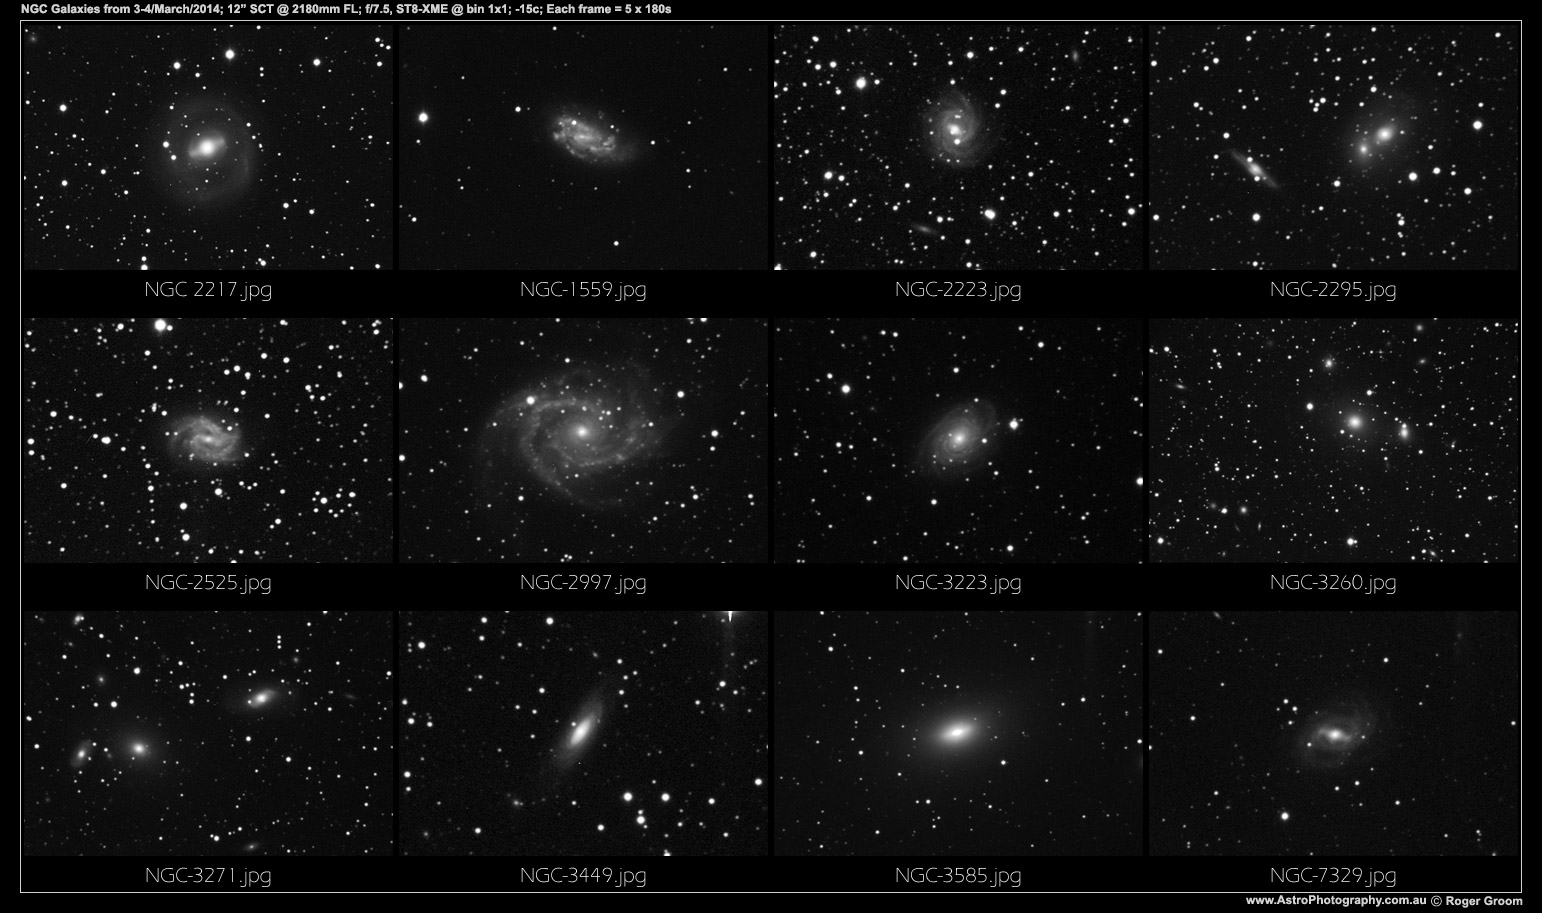 NGC Galaxies 5th March 2014